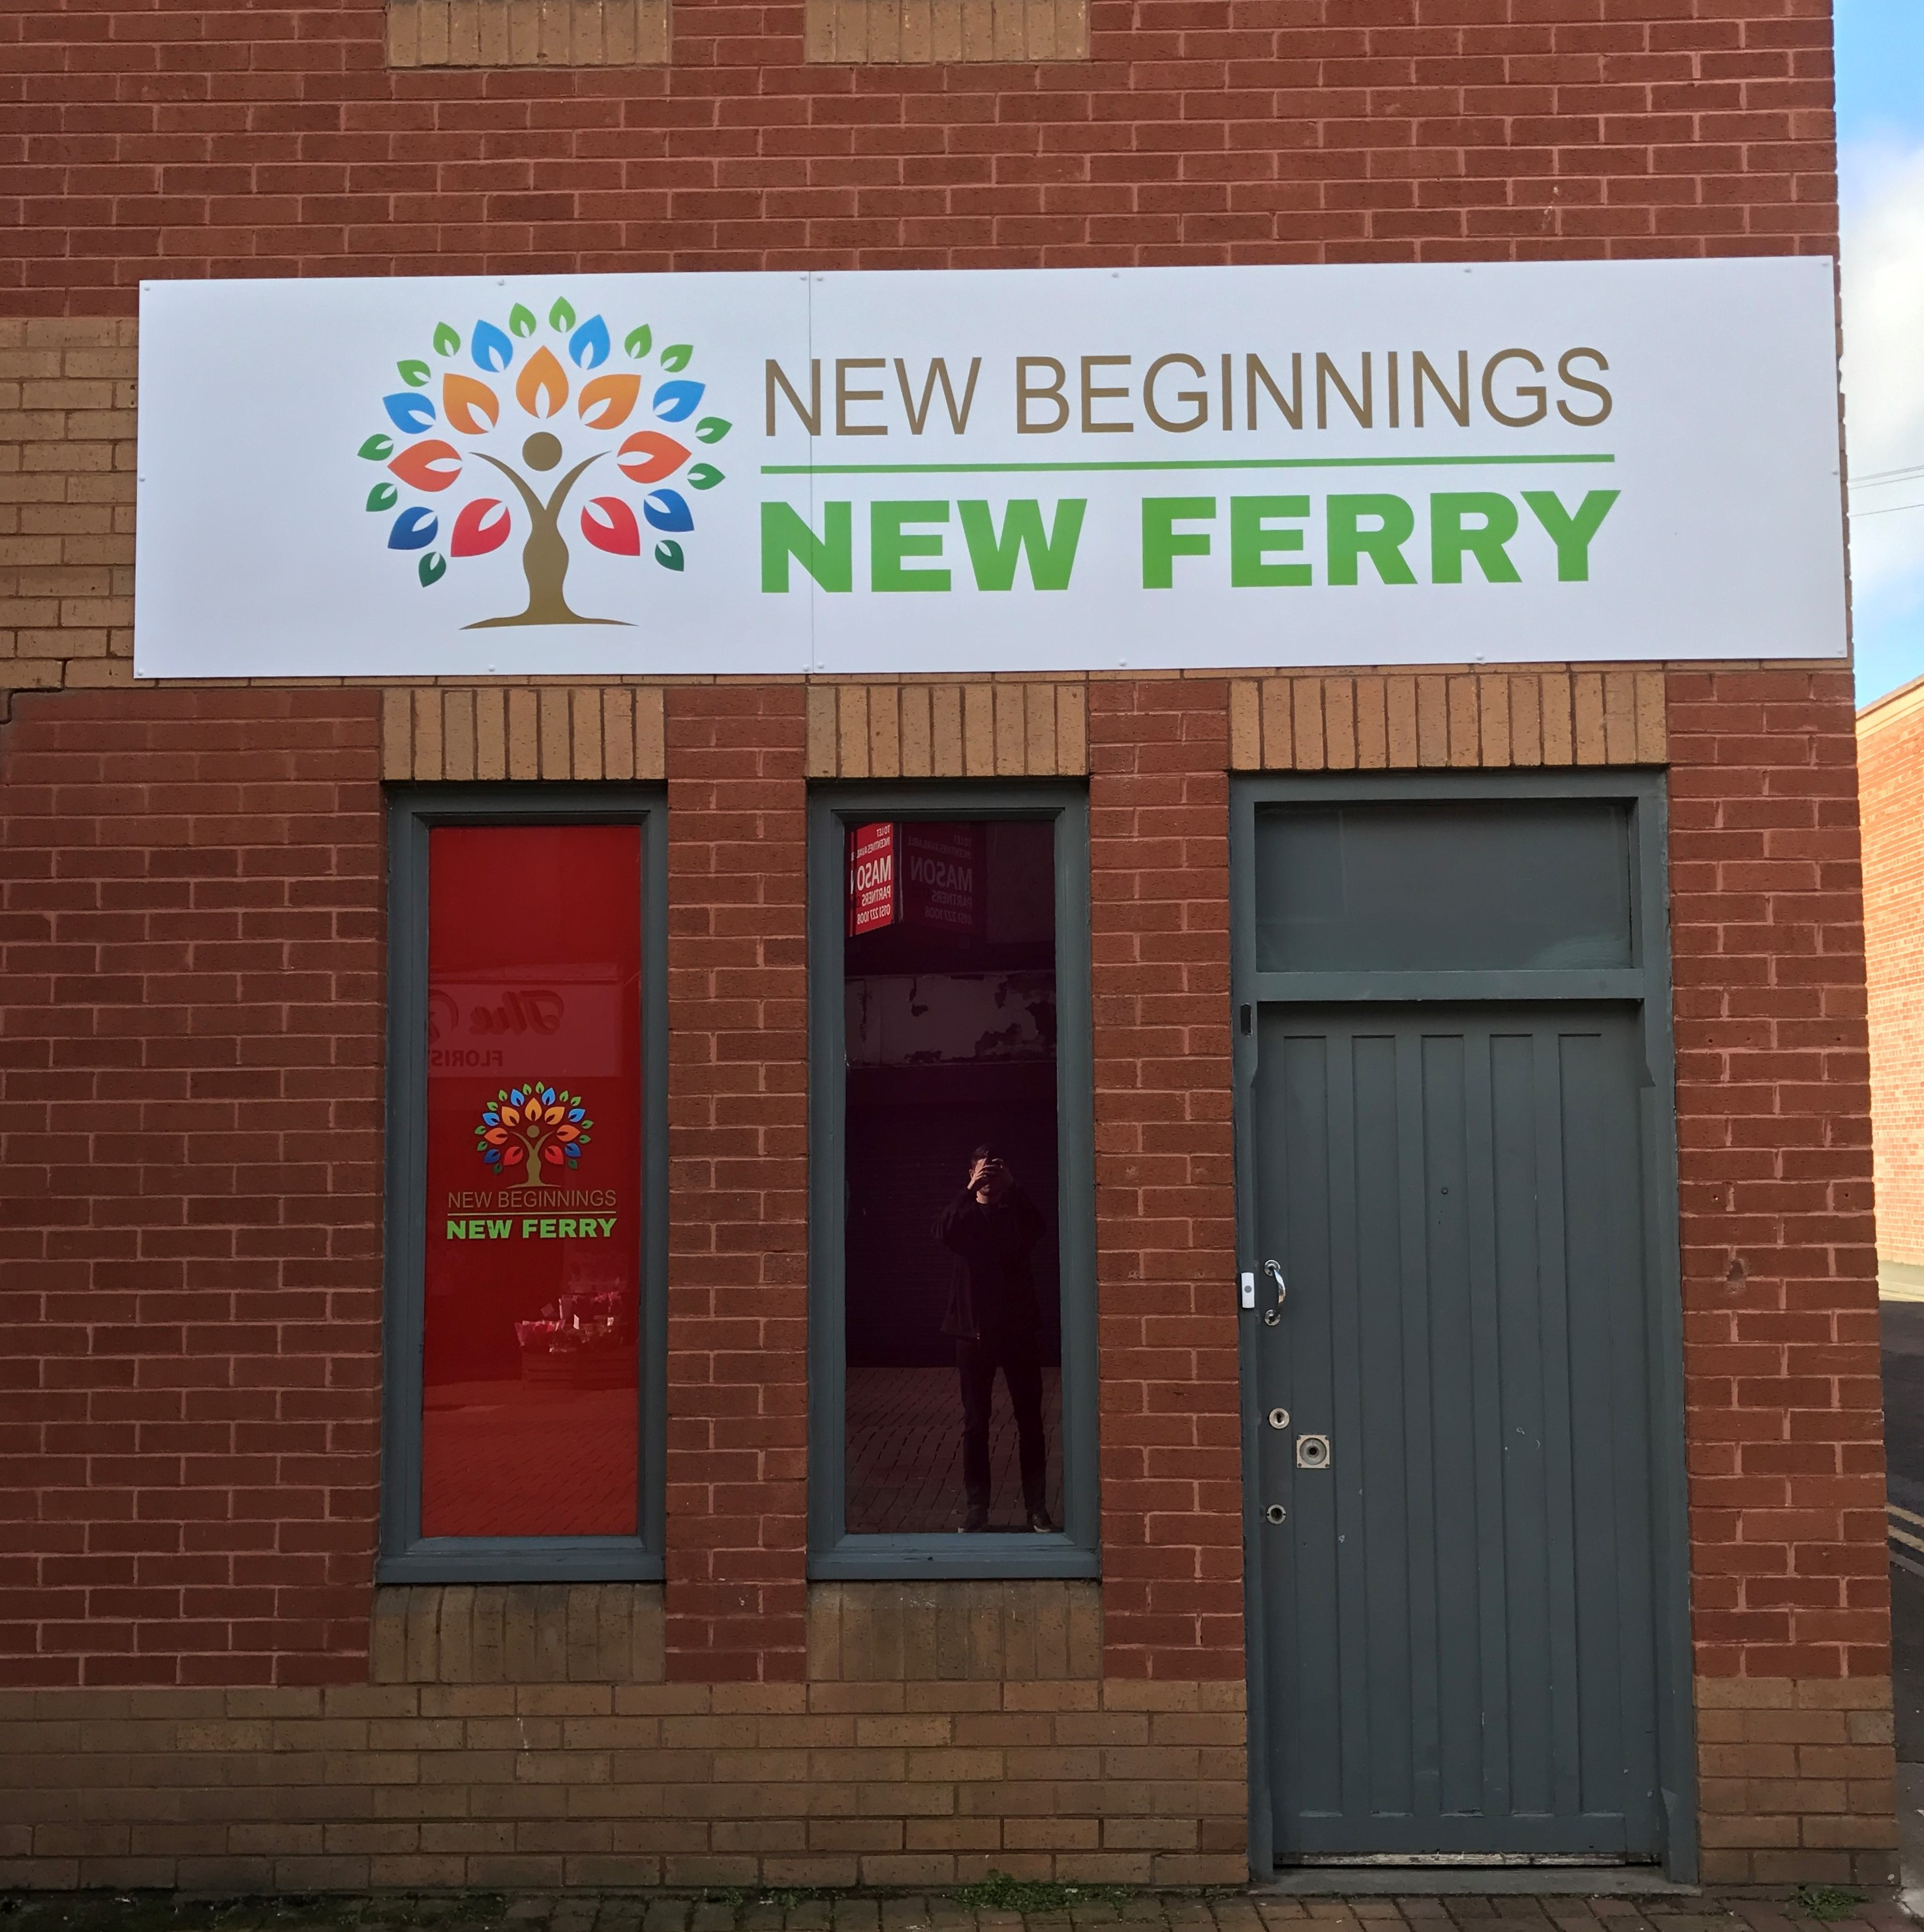 Signs Express Help With A New Beginning for New Ferry